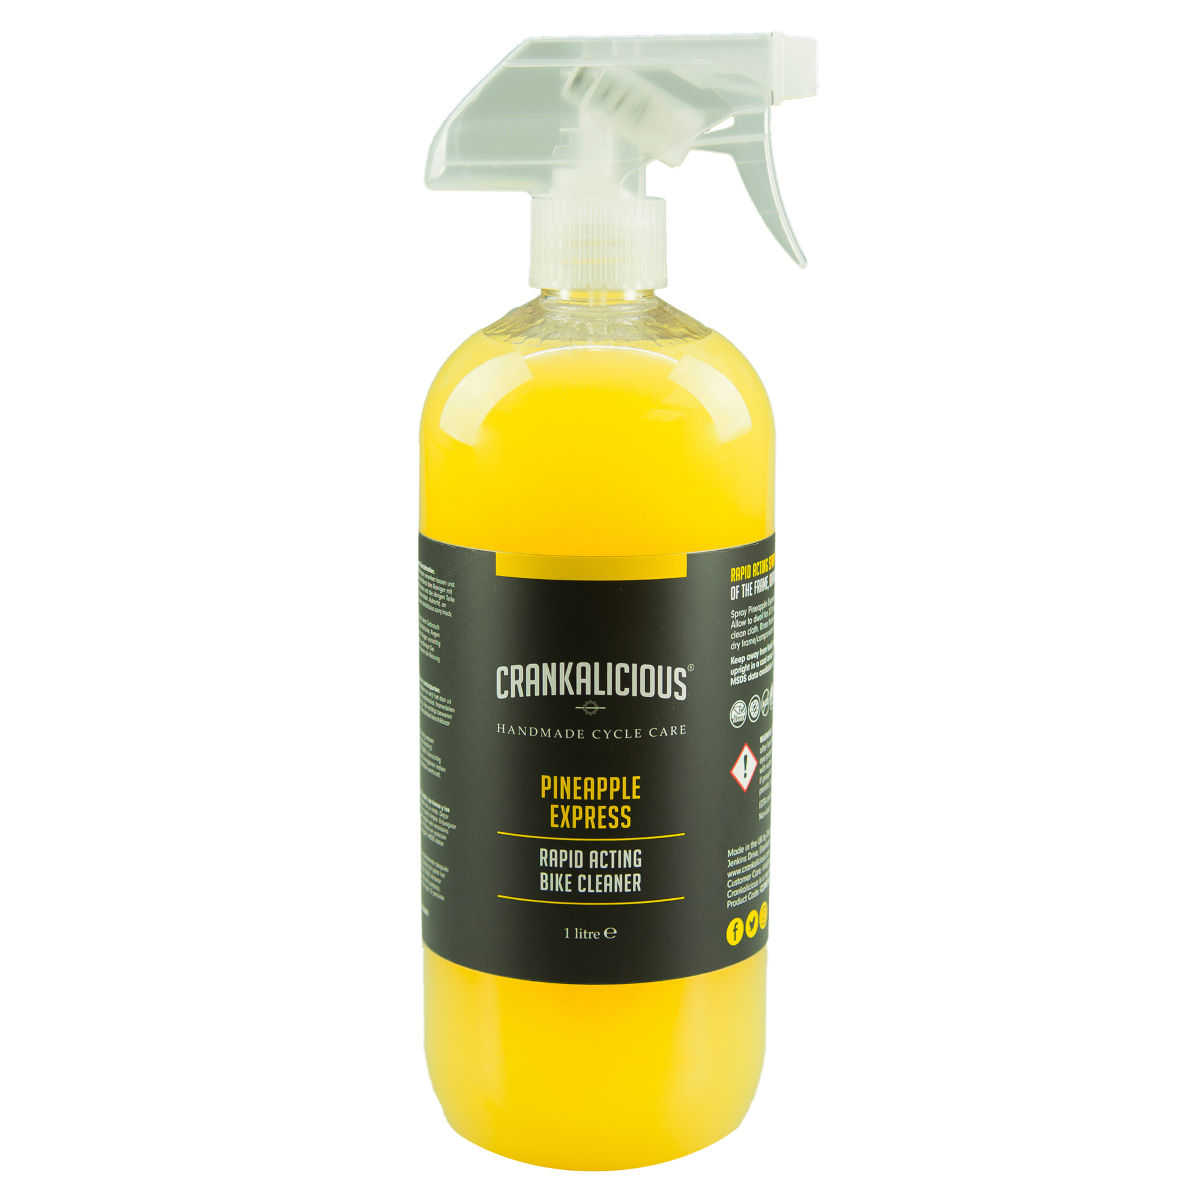 Crankalicious Pineapple Express 1 litre Spray  One Size - Productos de limpieza